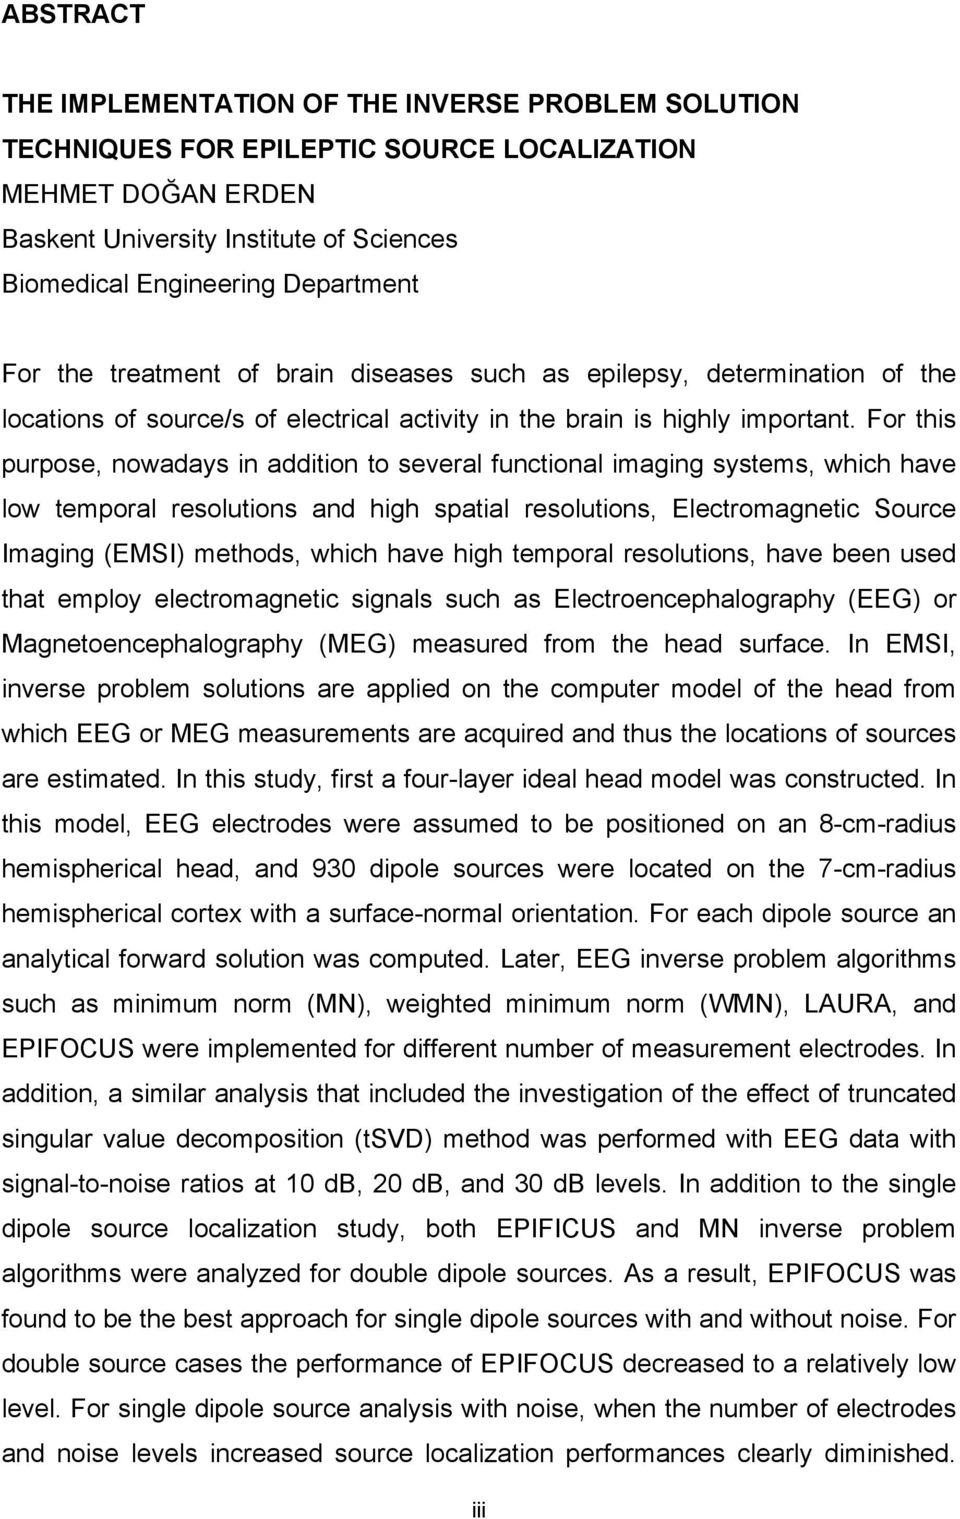 For this purpose, nowadays in addition to several functional imaging systems, which have low temporal resolutions and high spatial resolutions, Electromagnetic Source Imaging (EMSI) methods, which